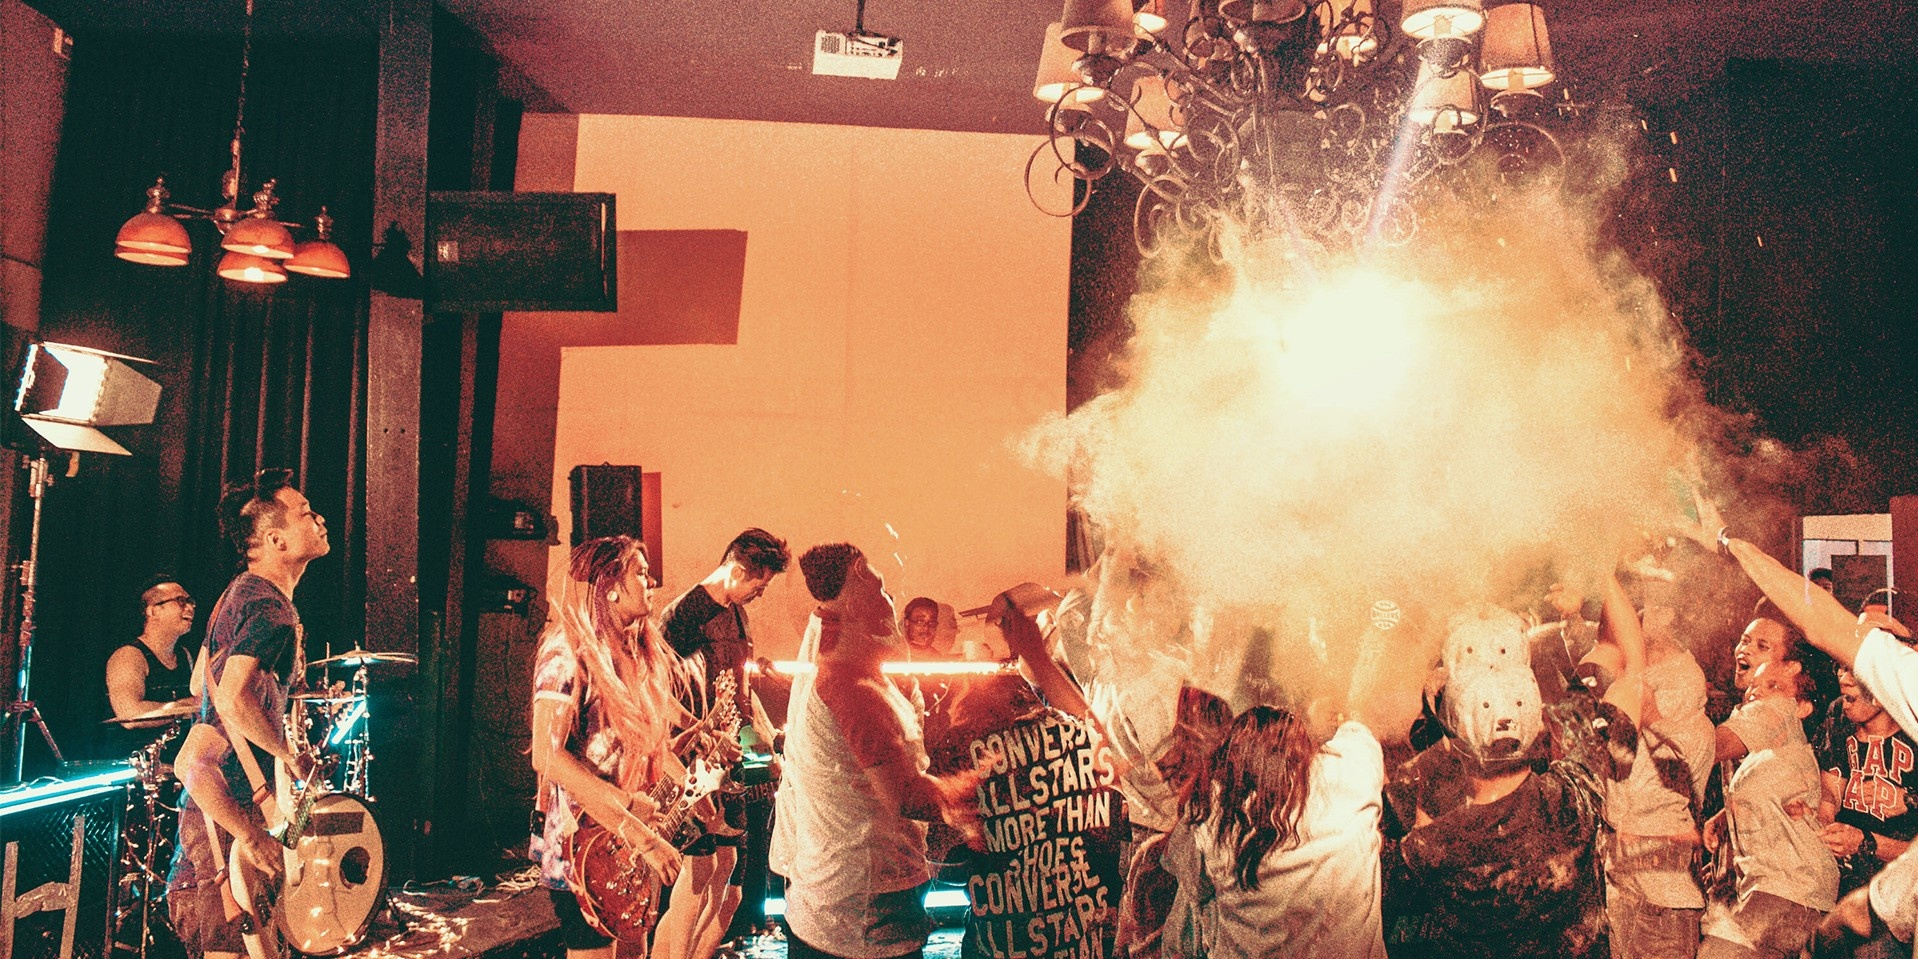 PHOTO GALLERY: An Honest Mistake's Manila Party in 'We're Alright'